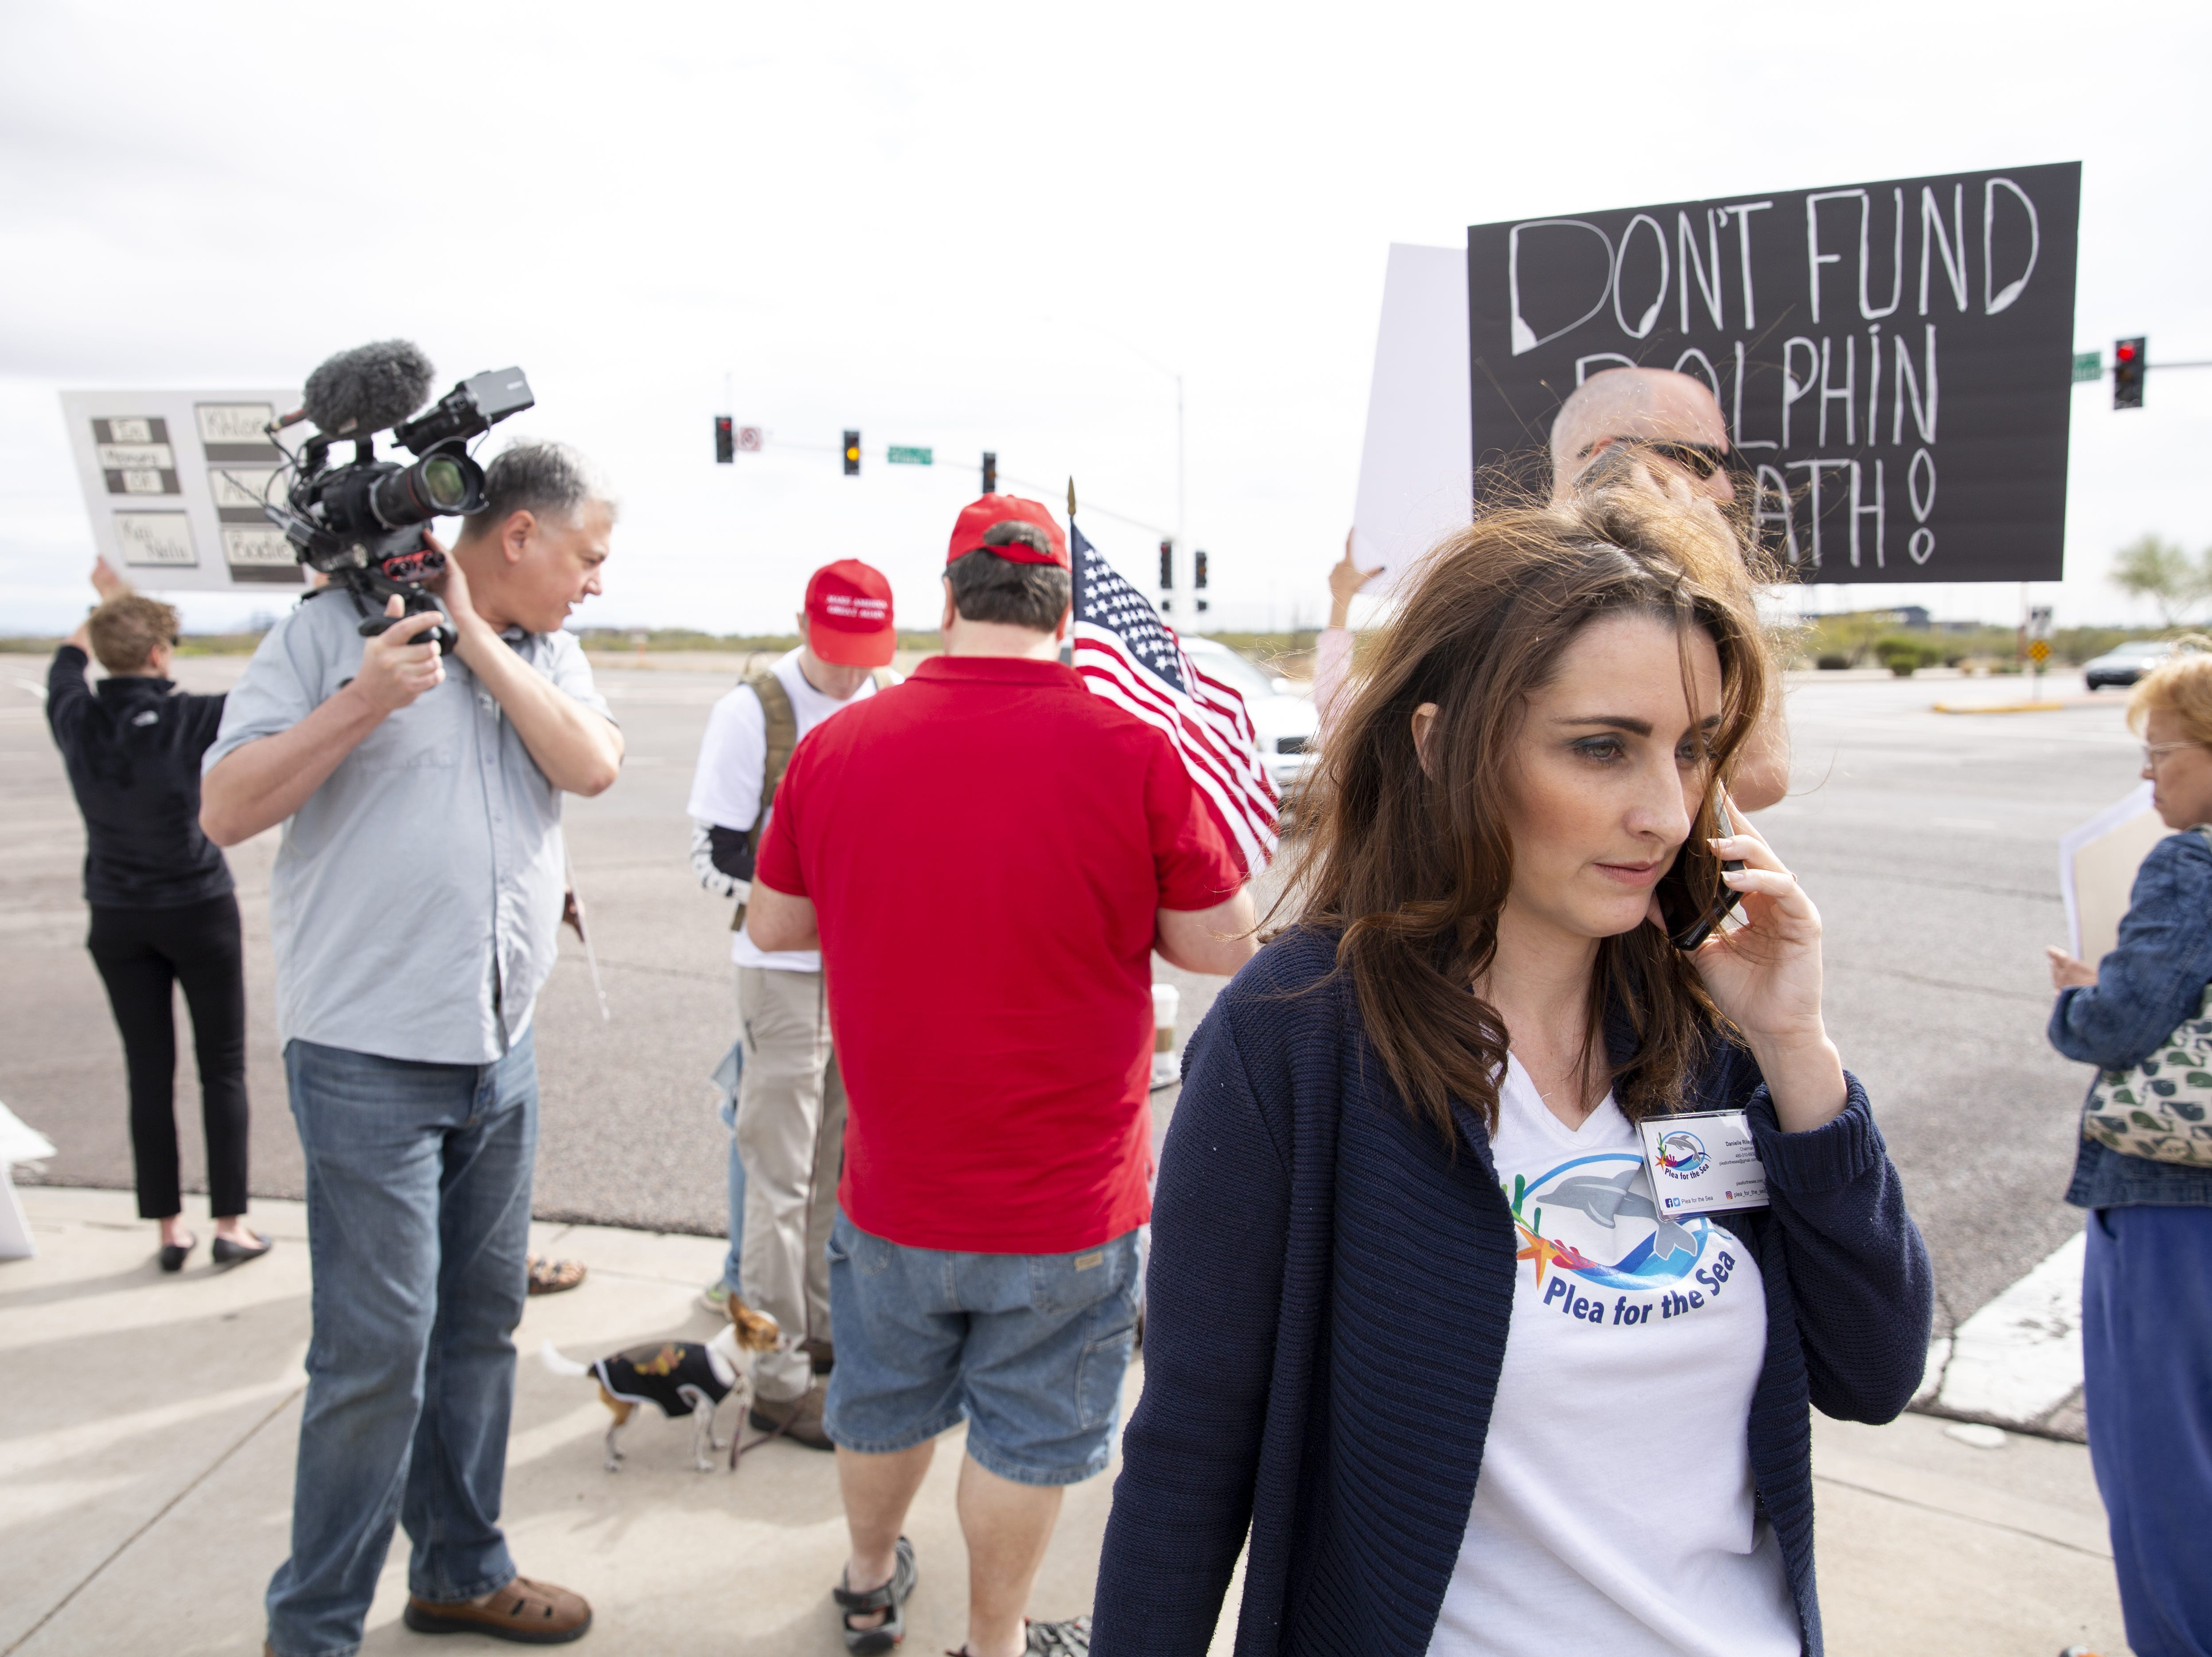 Danielle Riley, the chairman for Plea for the Sea, calls the police after a conflict between Dolphinaris protesters and two counter-protesters on Saturday, Feb. 2, 2019.